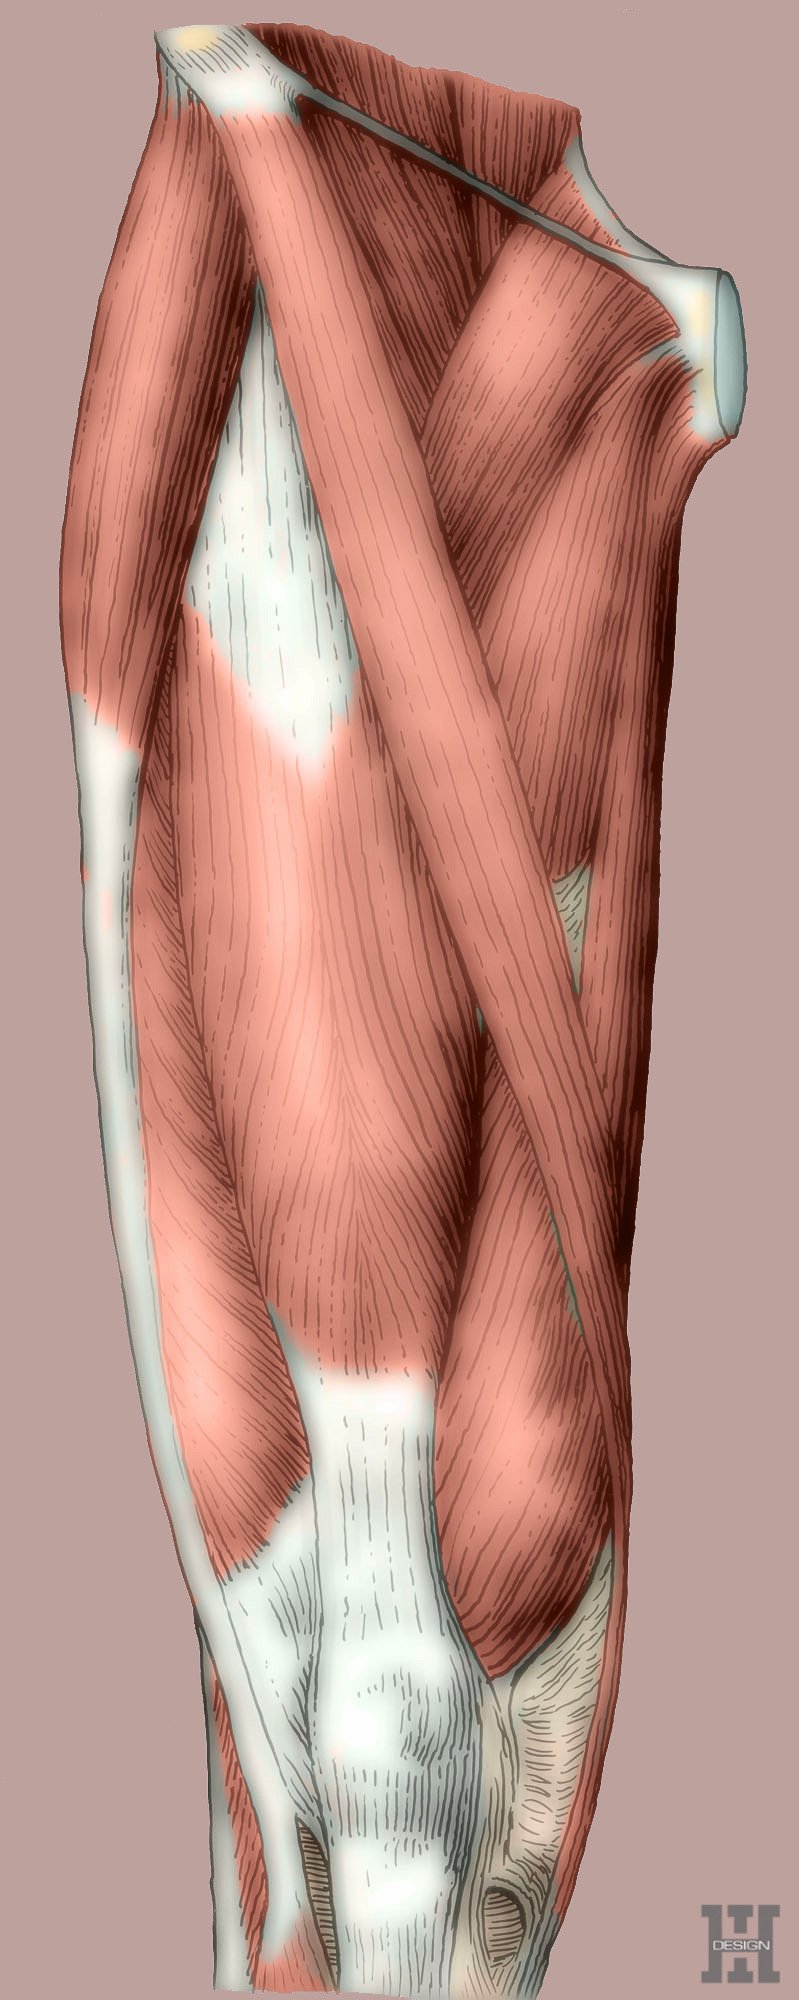 Muscles of thigh, anterior view